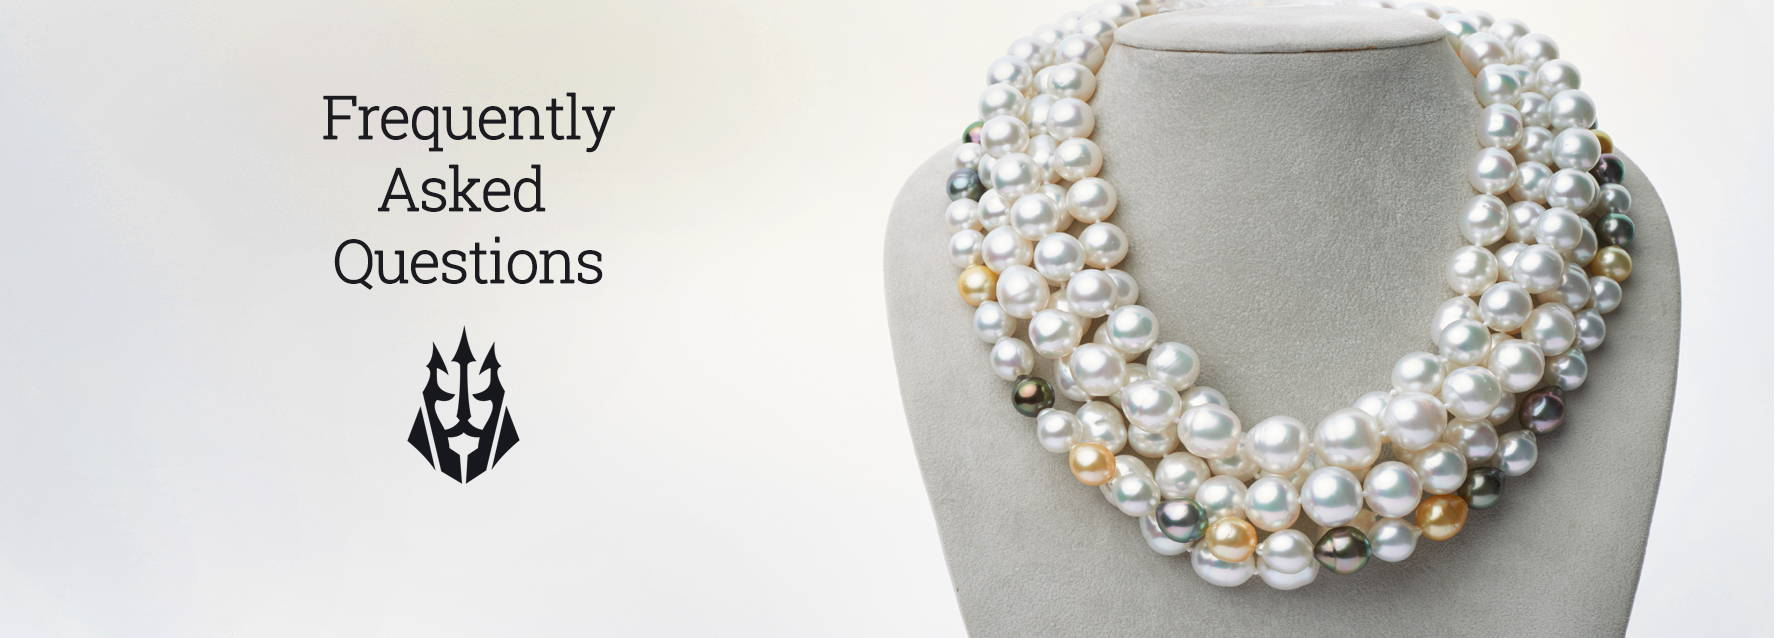 FAQs Answered Here at PurePearls.com